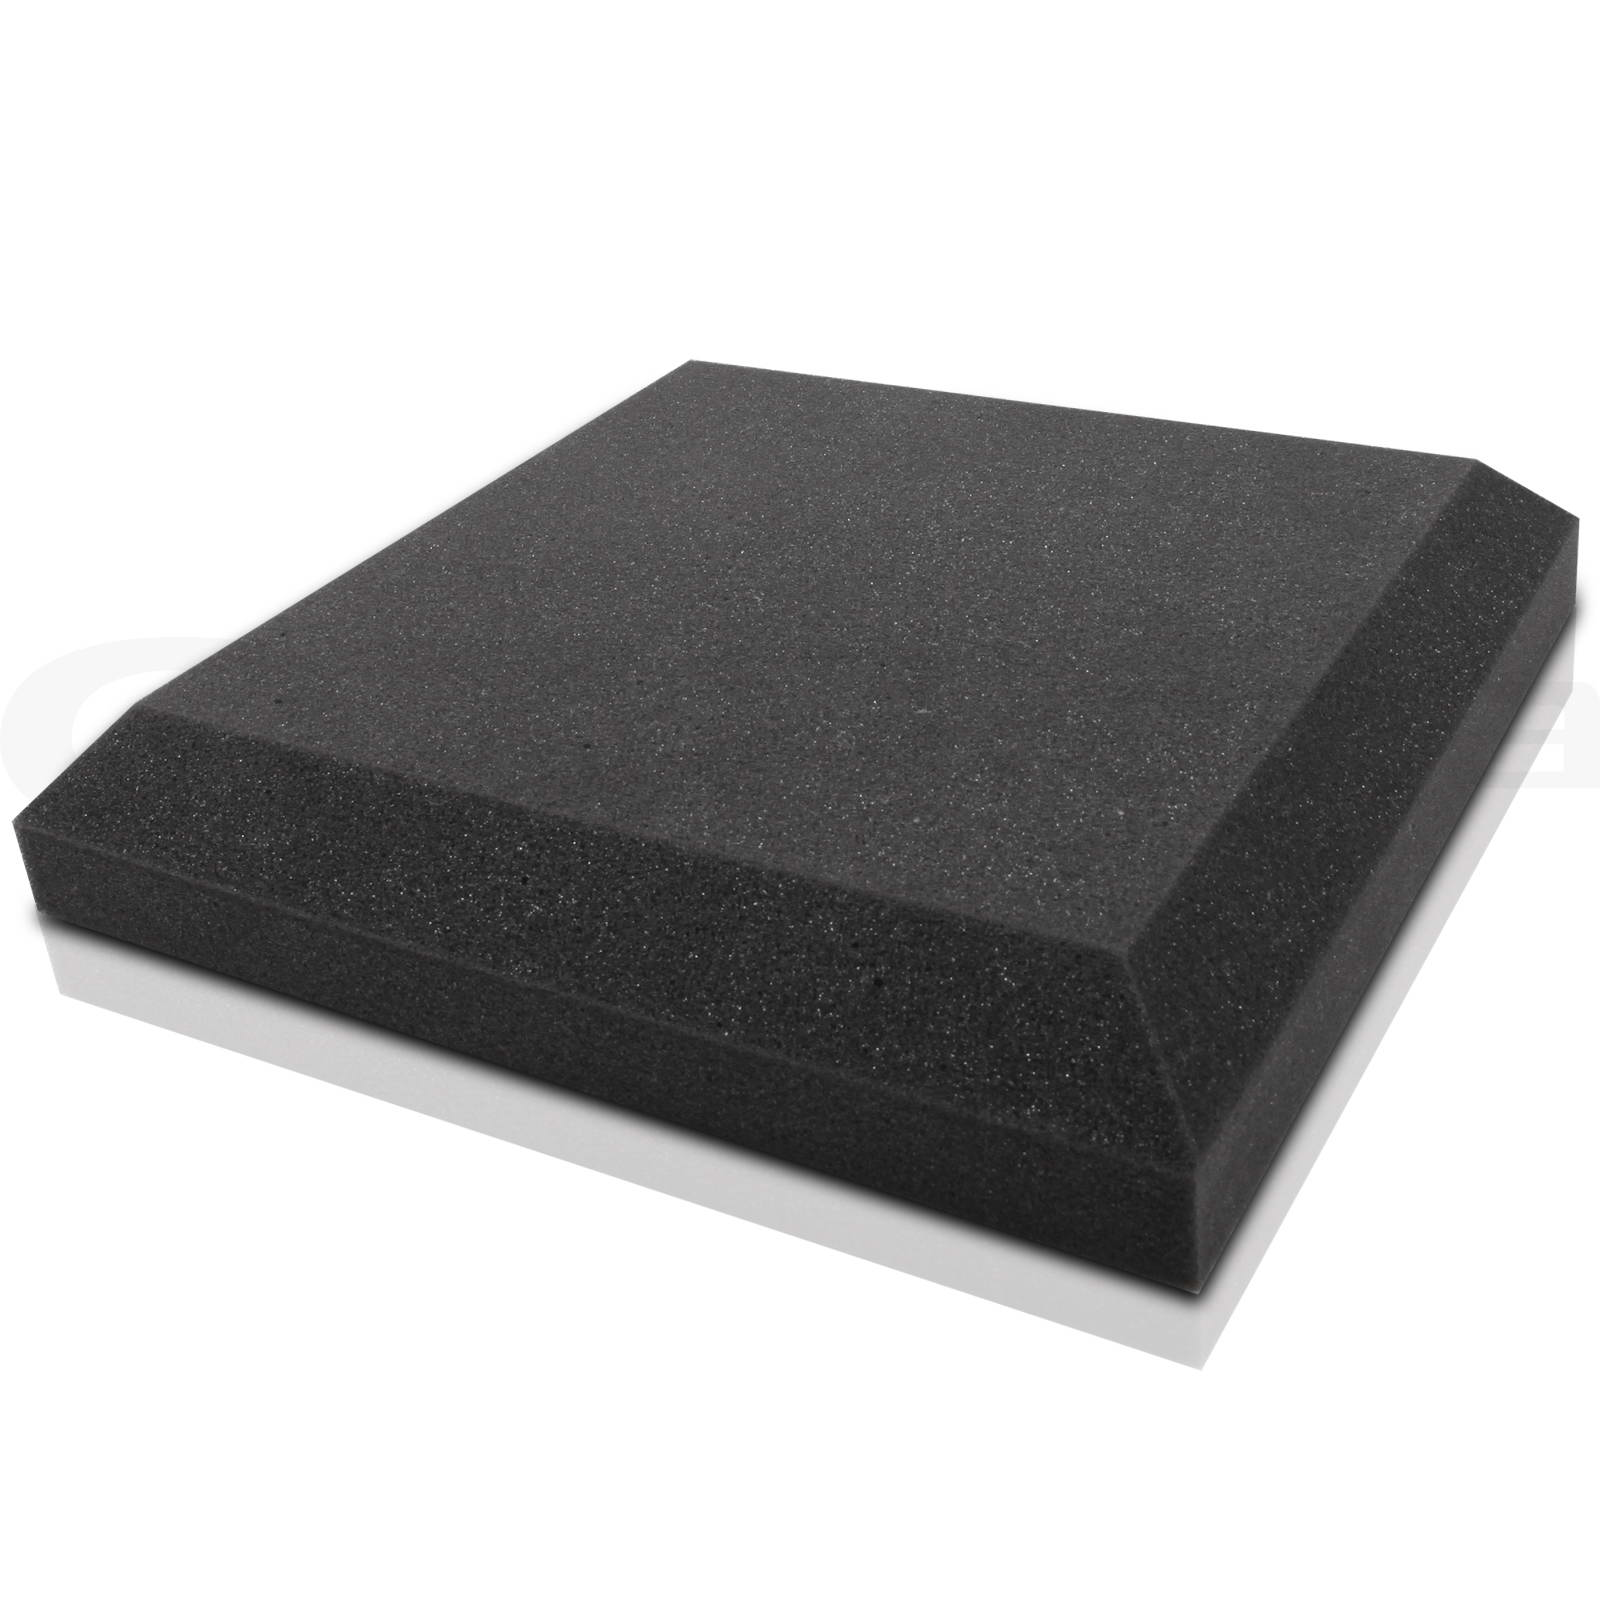 Acoustic Sound Batting : Studio acoustic foam sound proofing ceiling tile